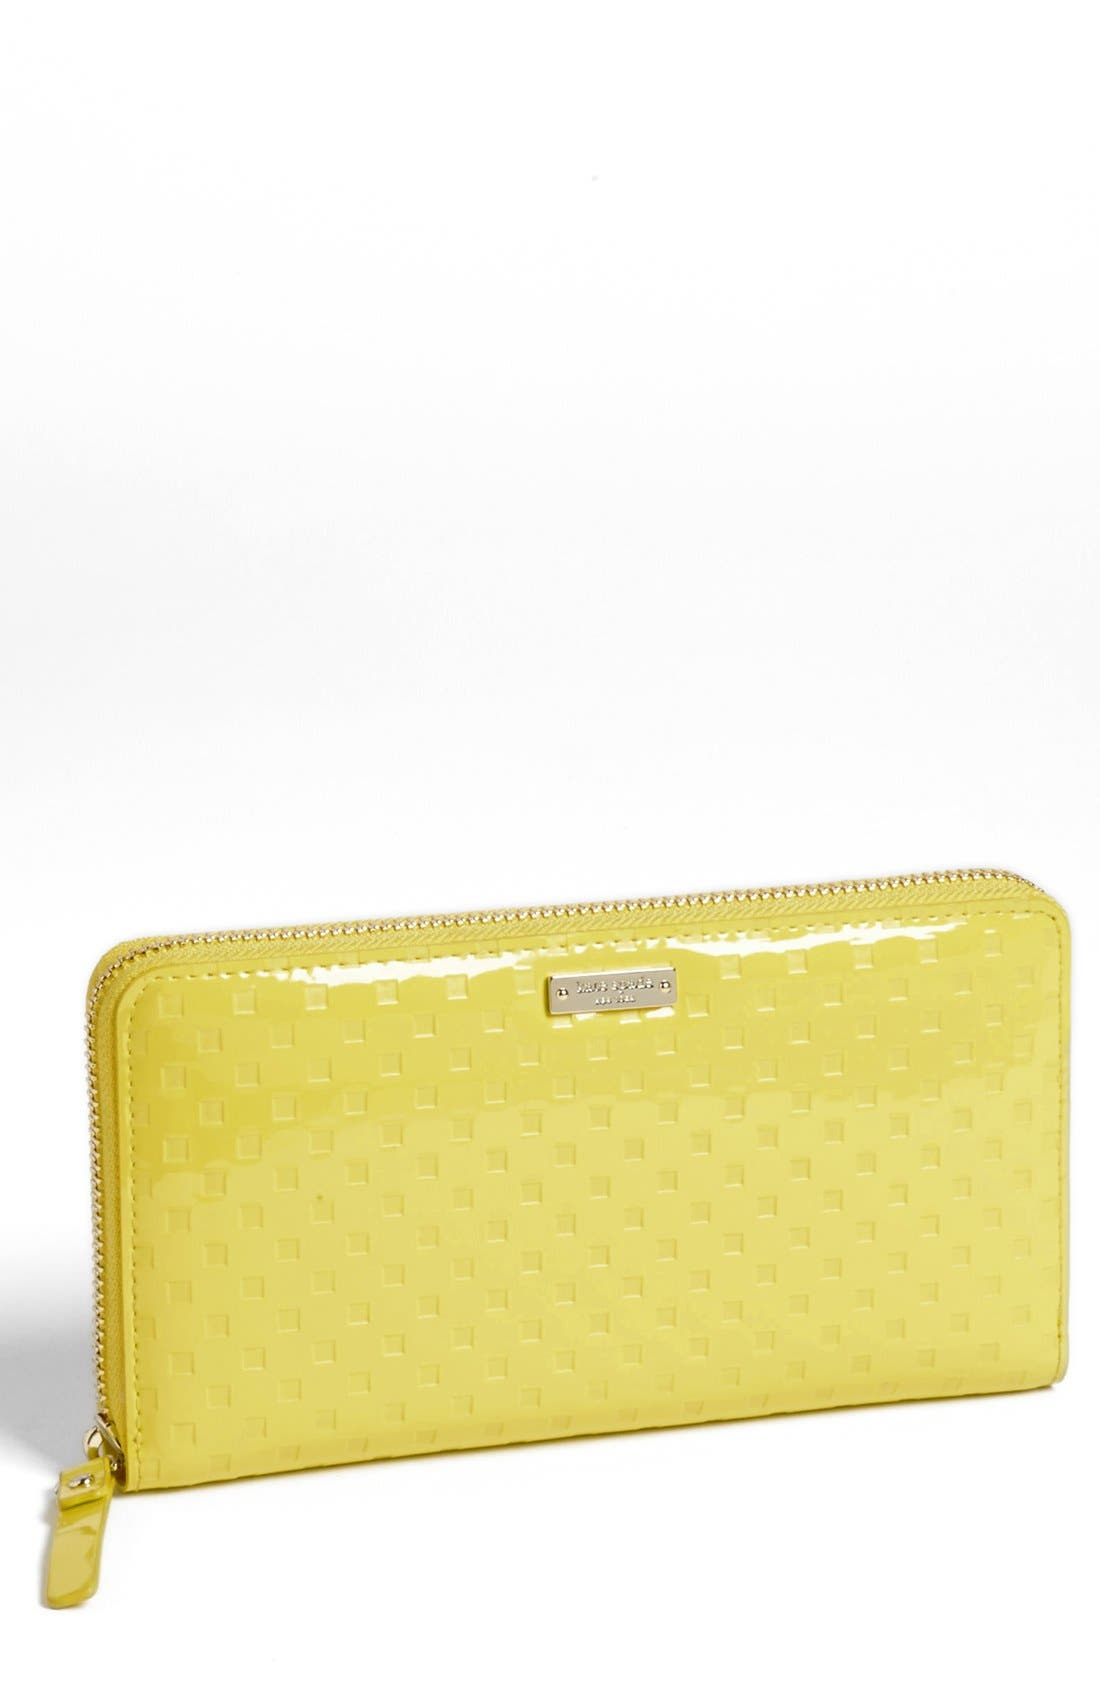 Alternate Image 1 Selected - kate spade new york 'jewel street -  lacey' wallet